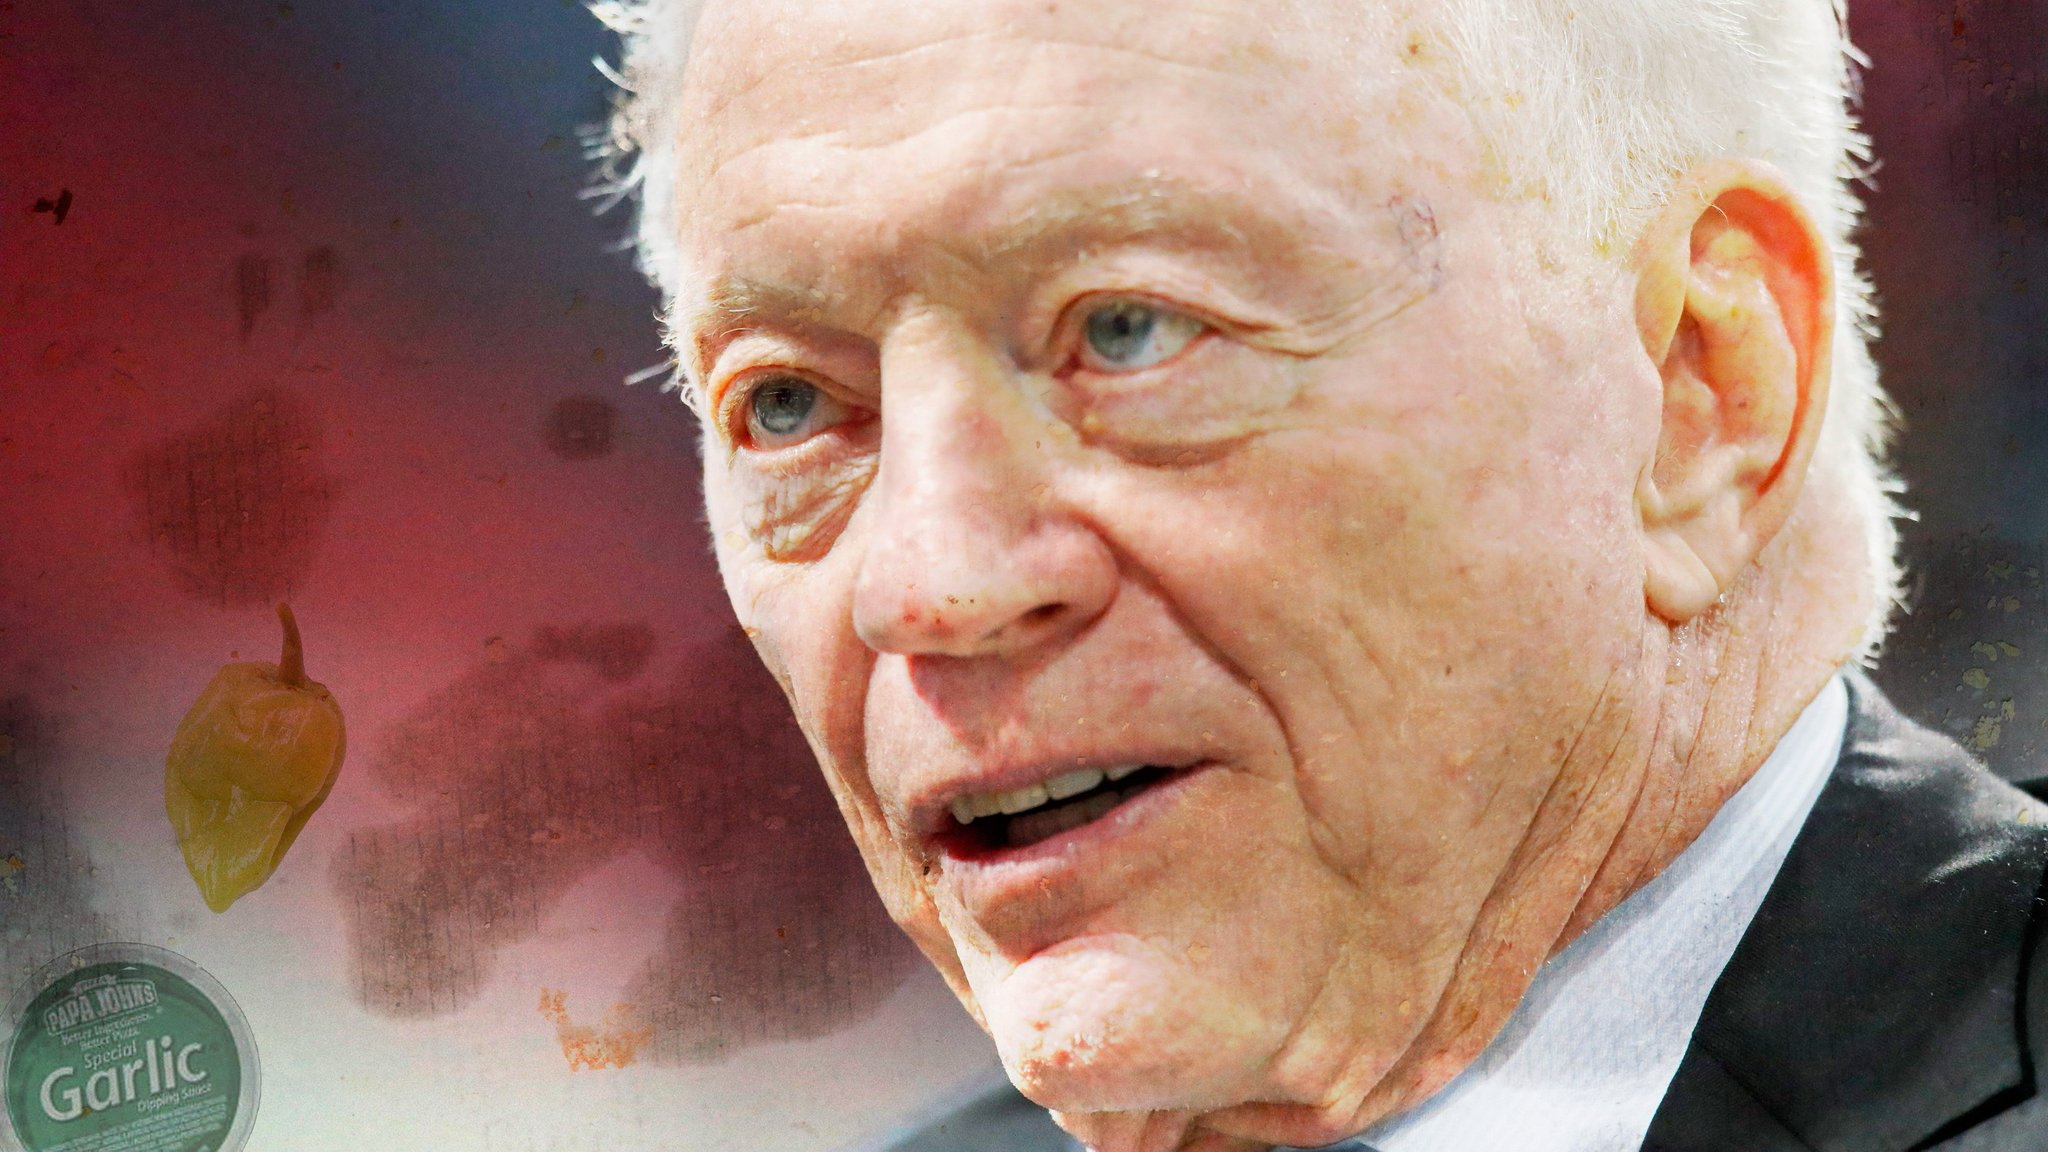 A new report suggests Cowboys owner Jerry Jones is behind the NFL's war with Papa John's https://t.co/AHJl6mHJtN https://t.co/EabliWATqW